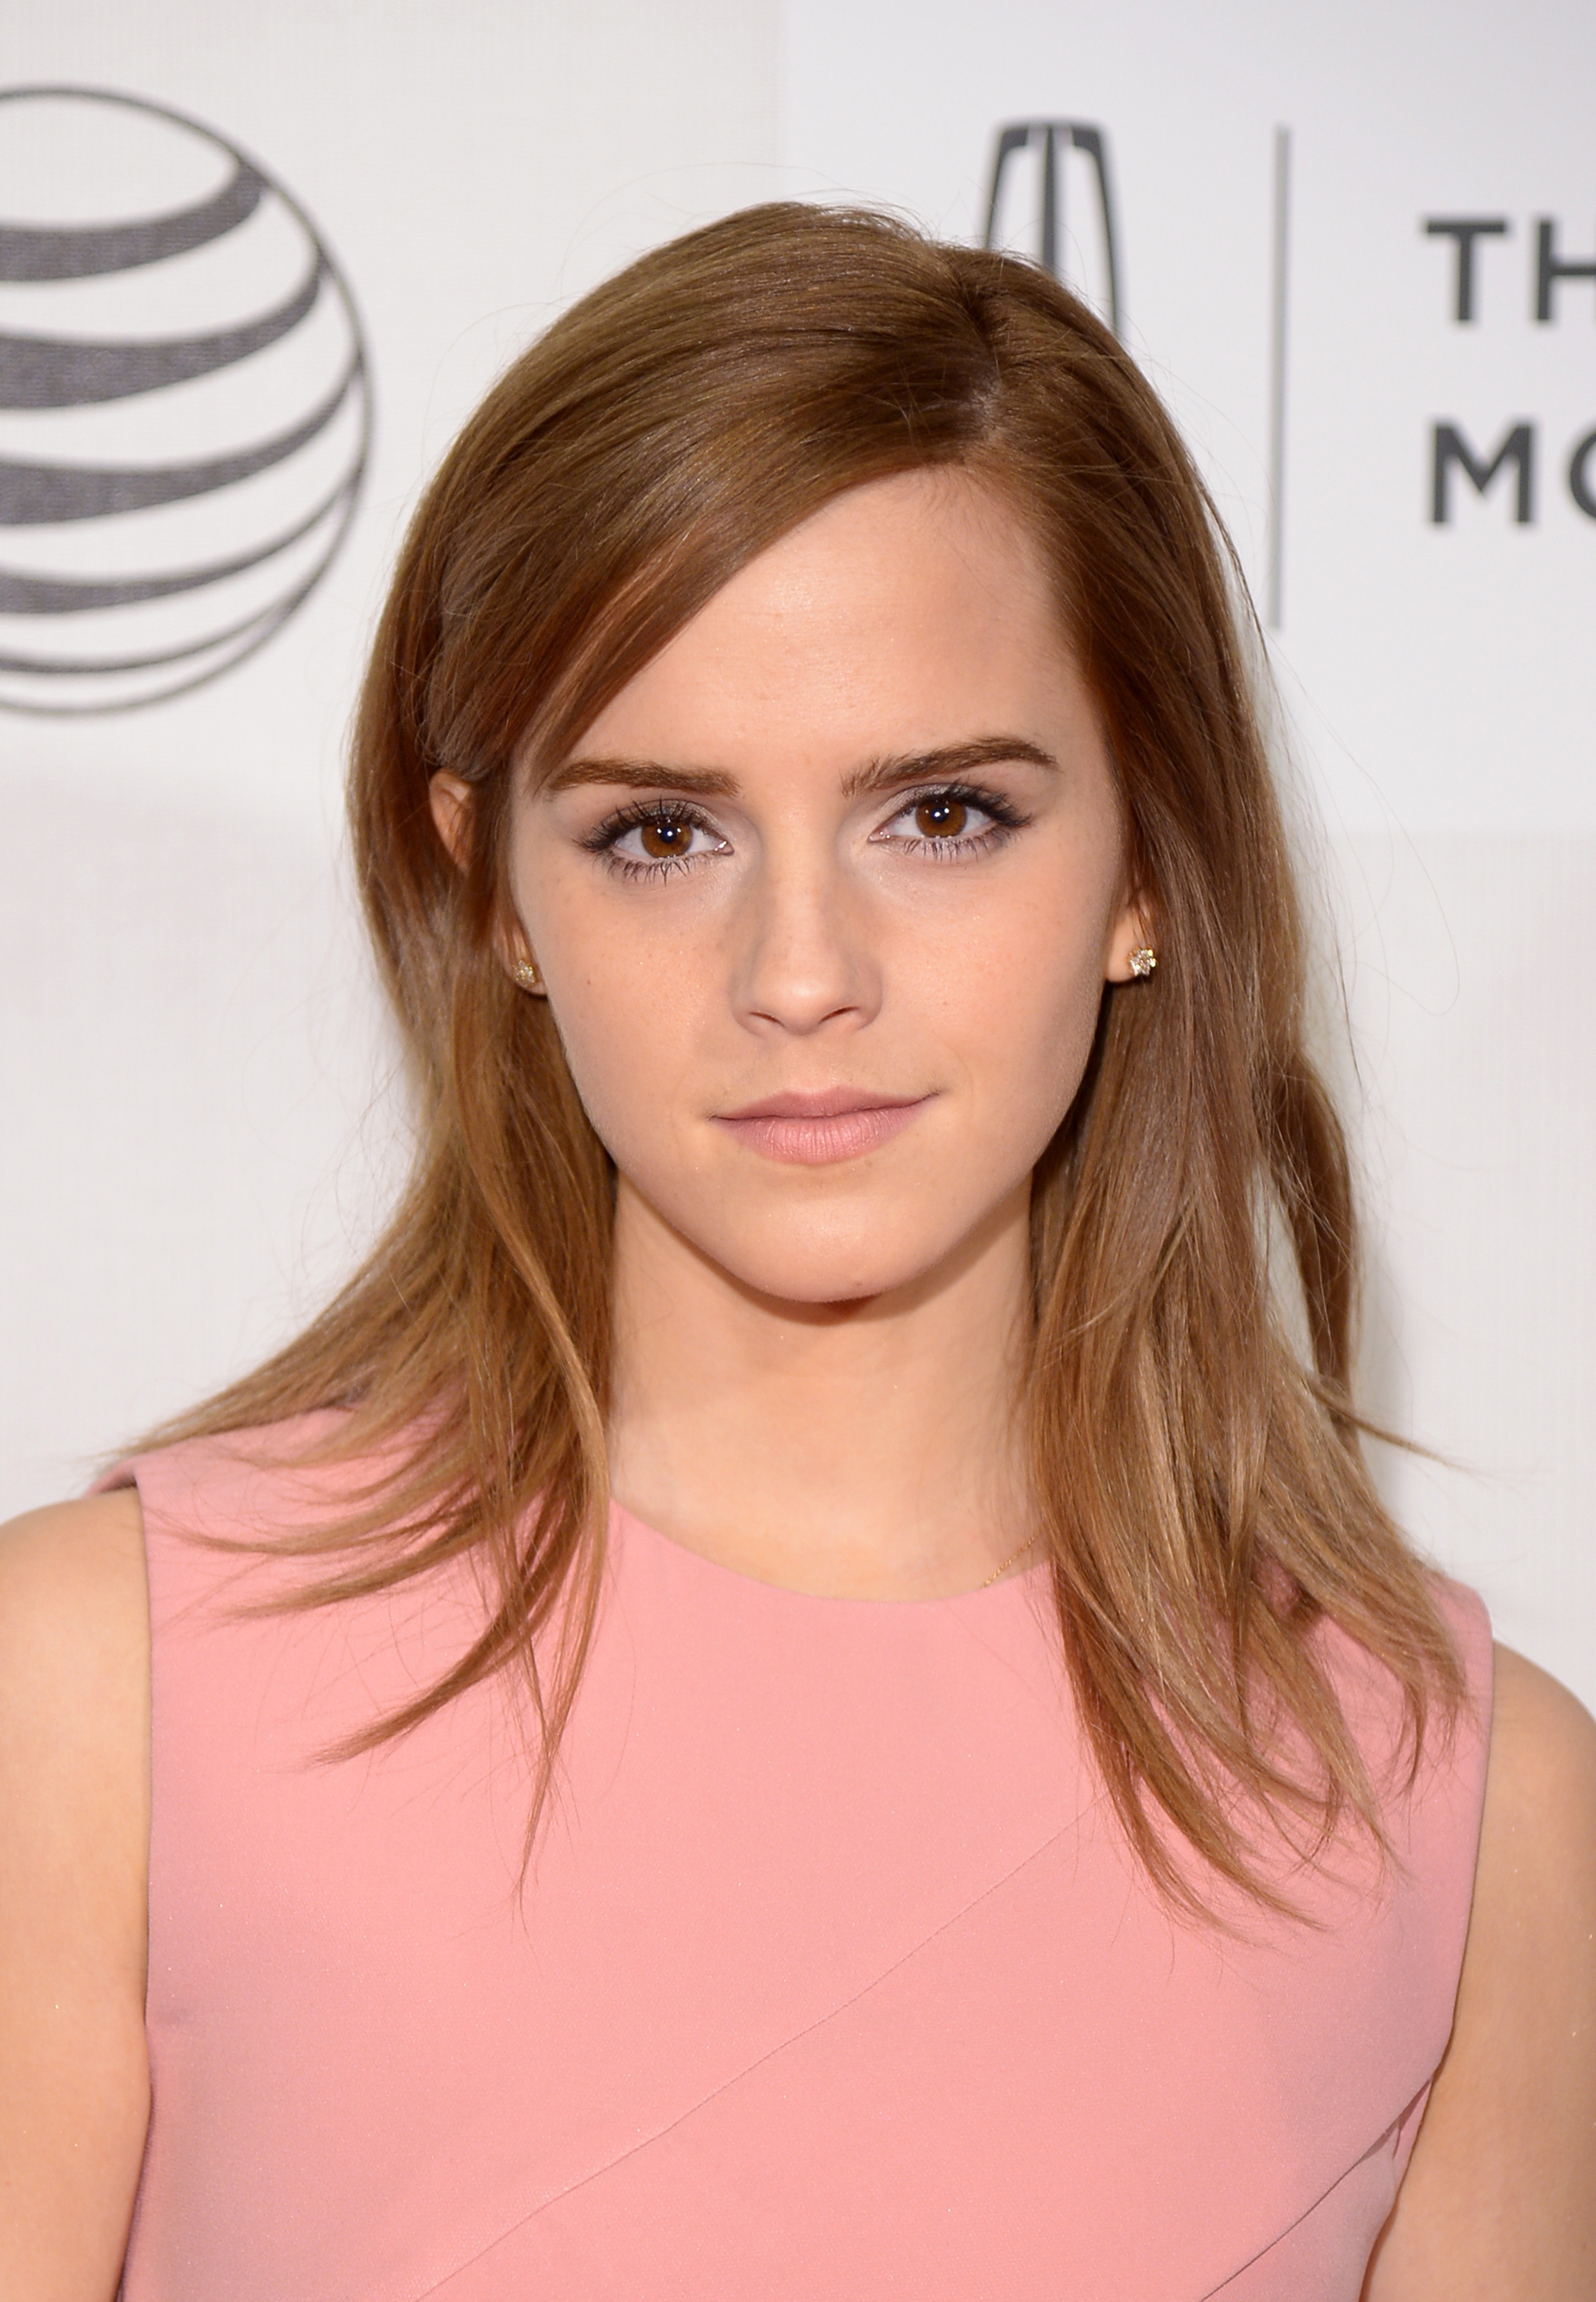 9 Most Powerful Quotes From Emma Watson's UN Speech on